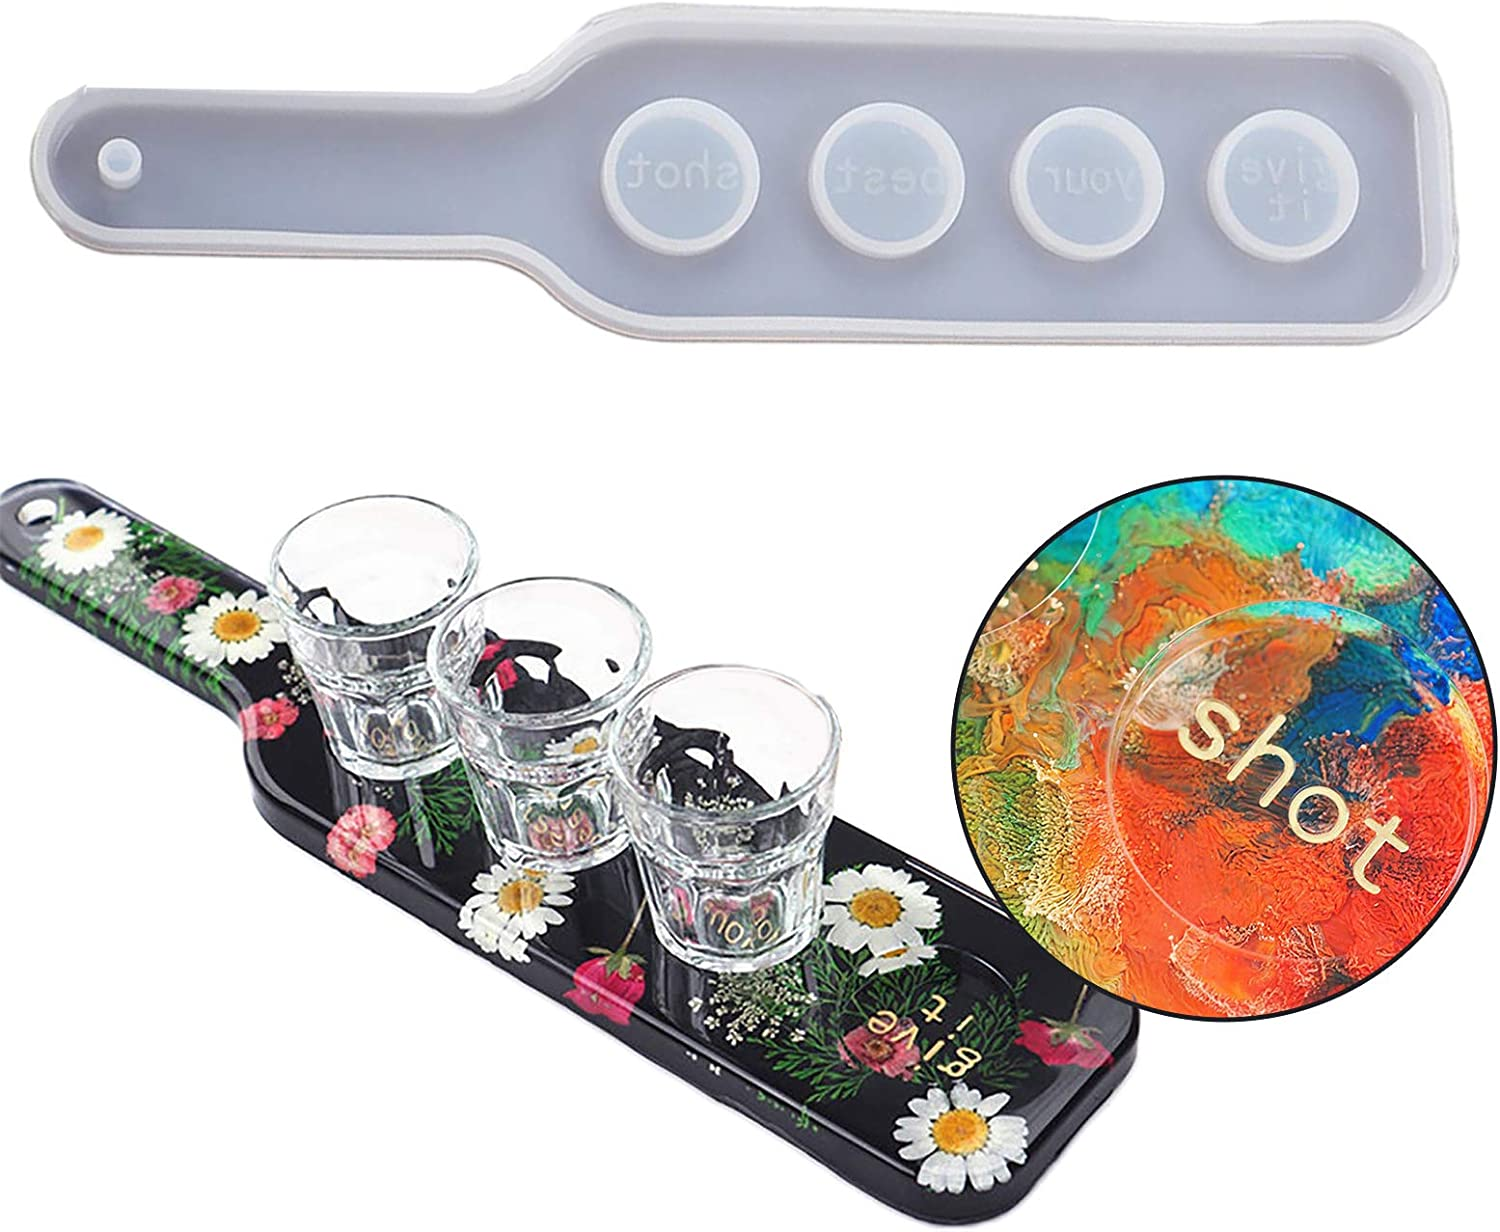 Shot Glass Serving Resin Tray Holder Mold Discount mail order Mo Ranking TOP20 Uv